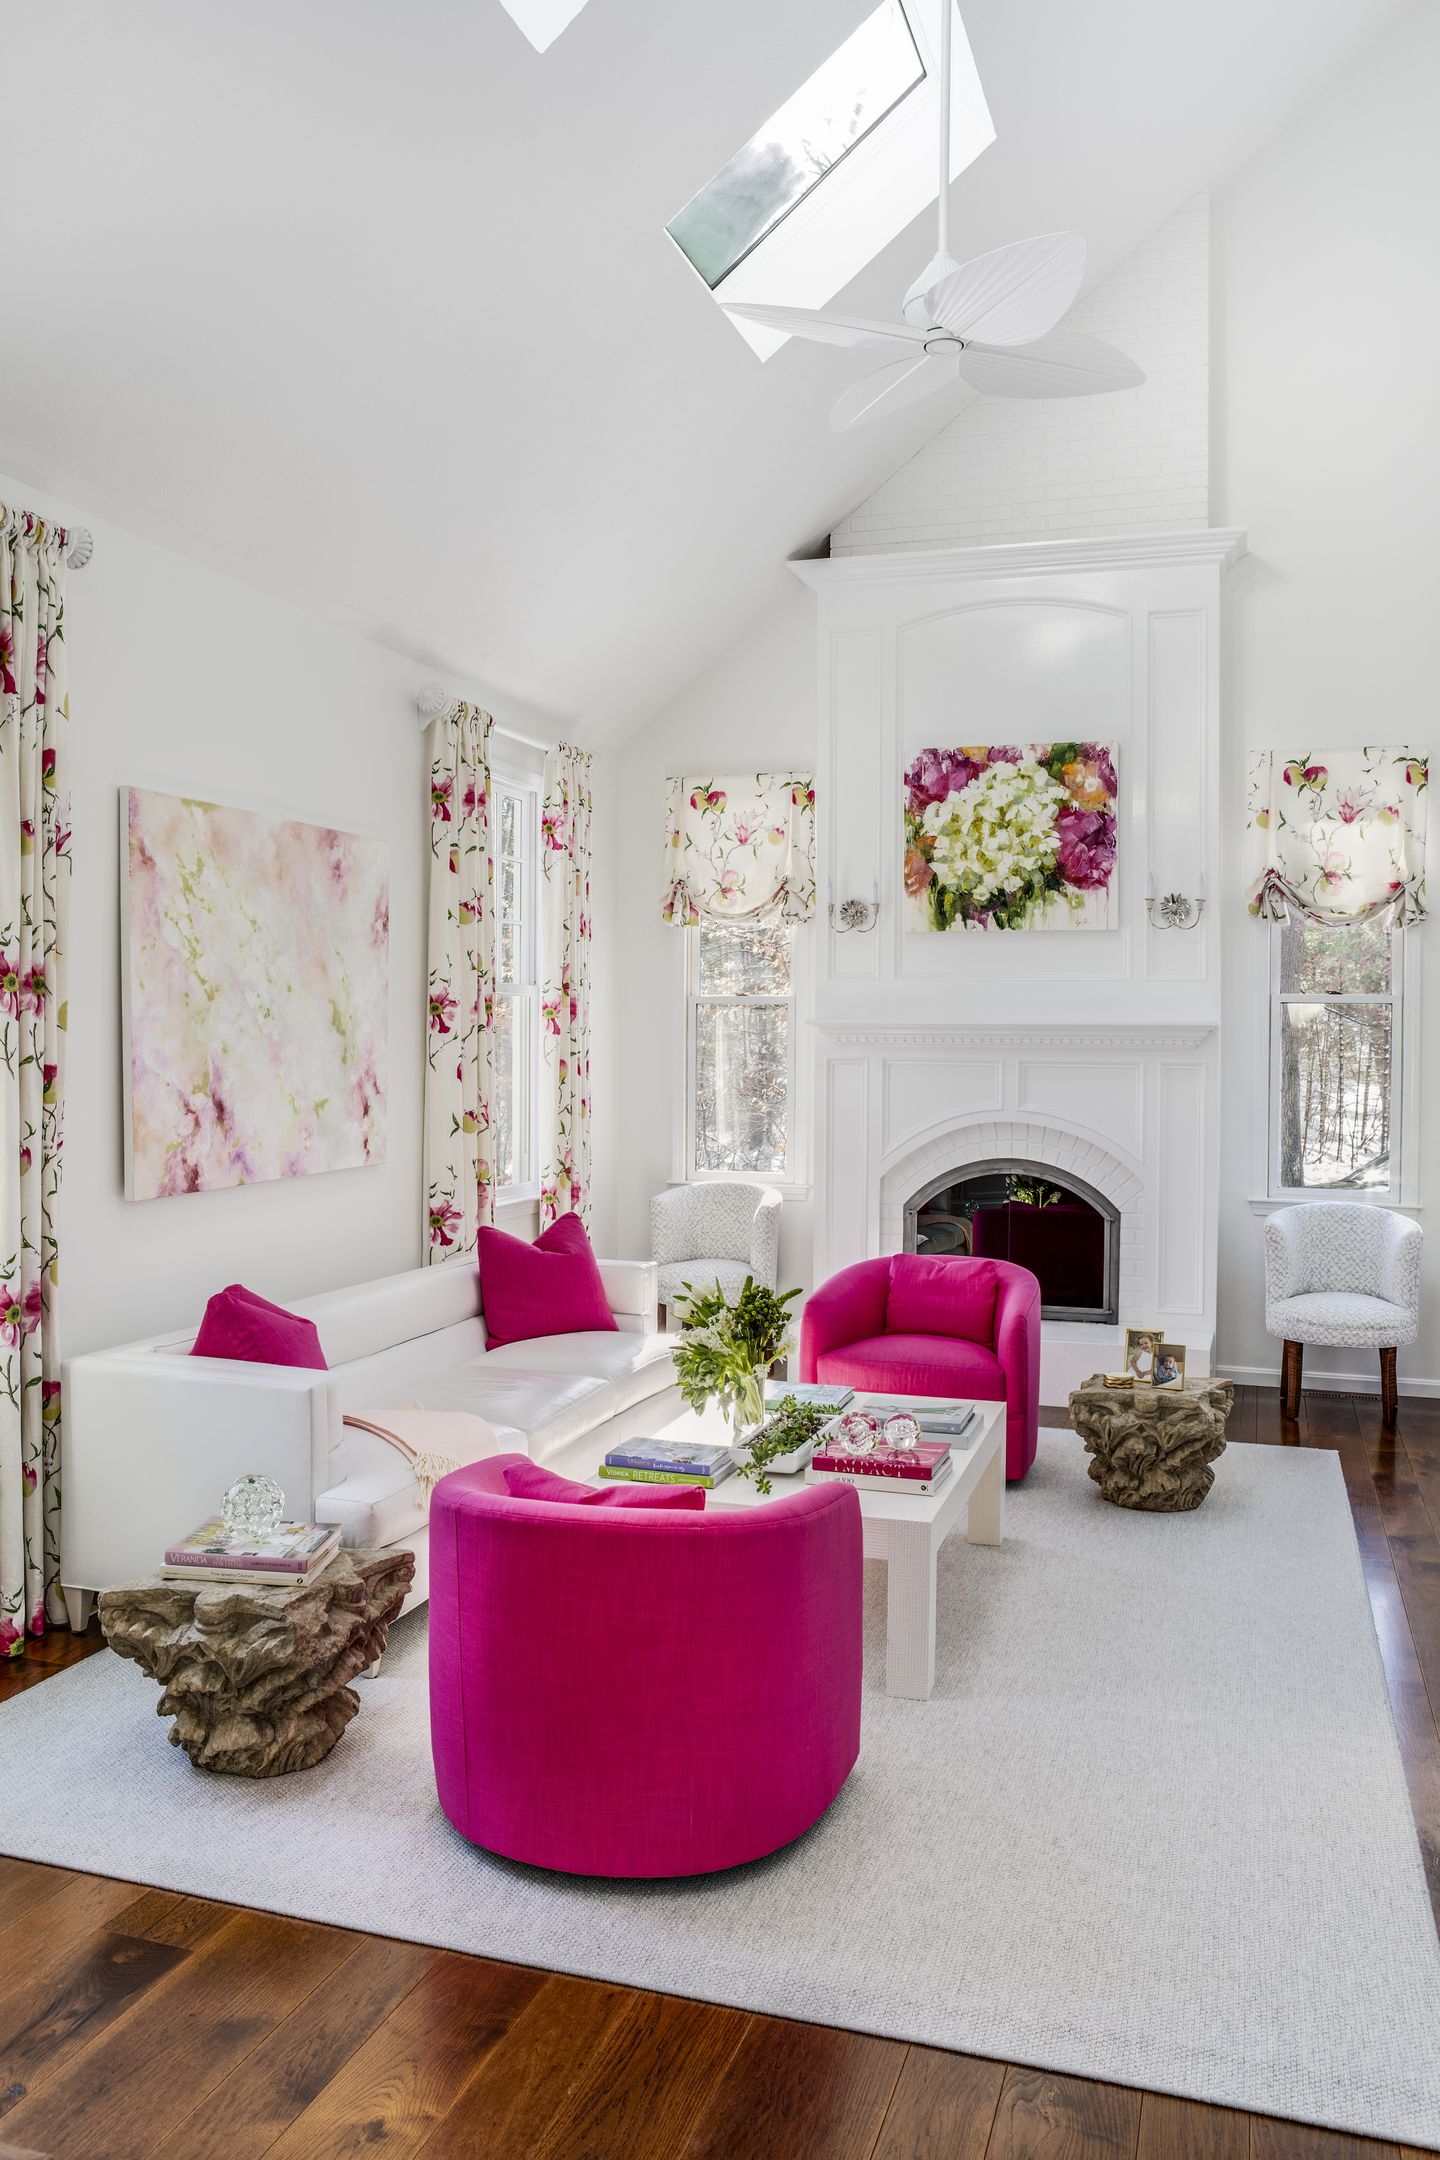 Updating A Living Room In Hot Pink - The Boston Globe